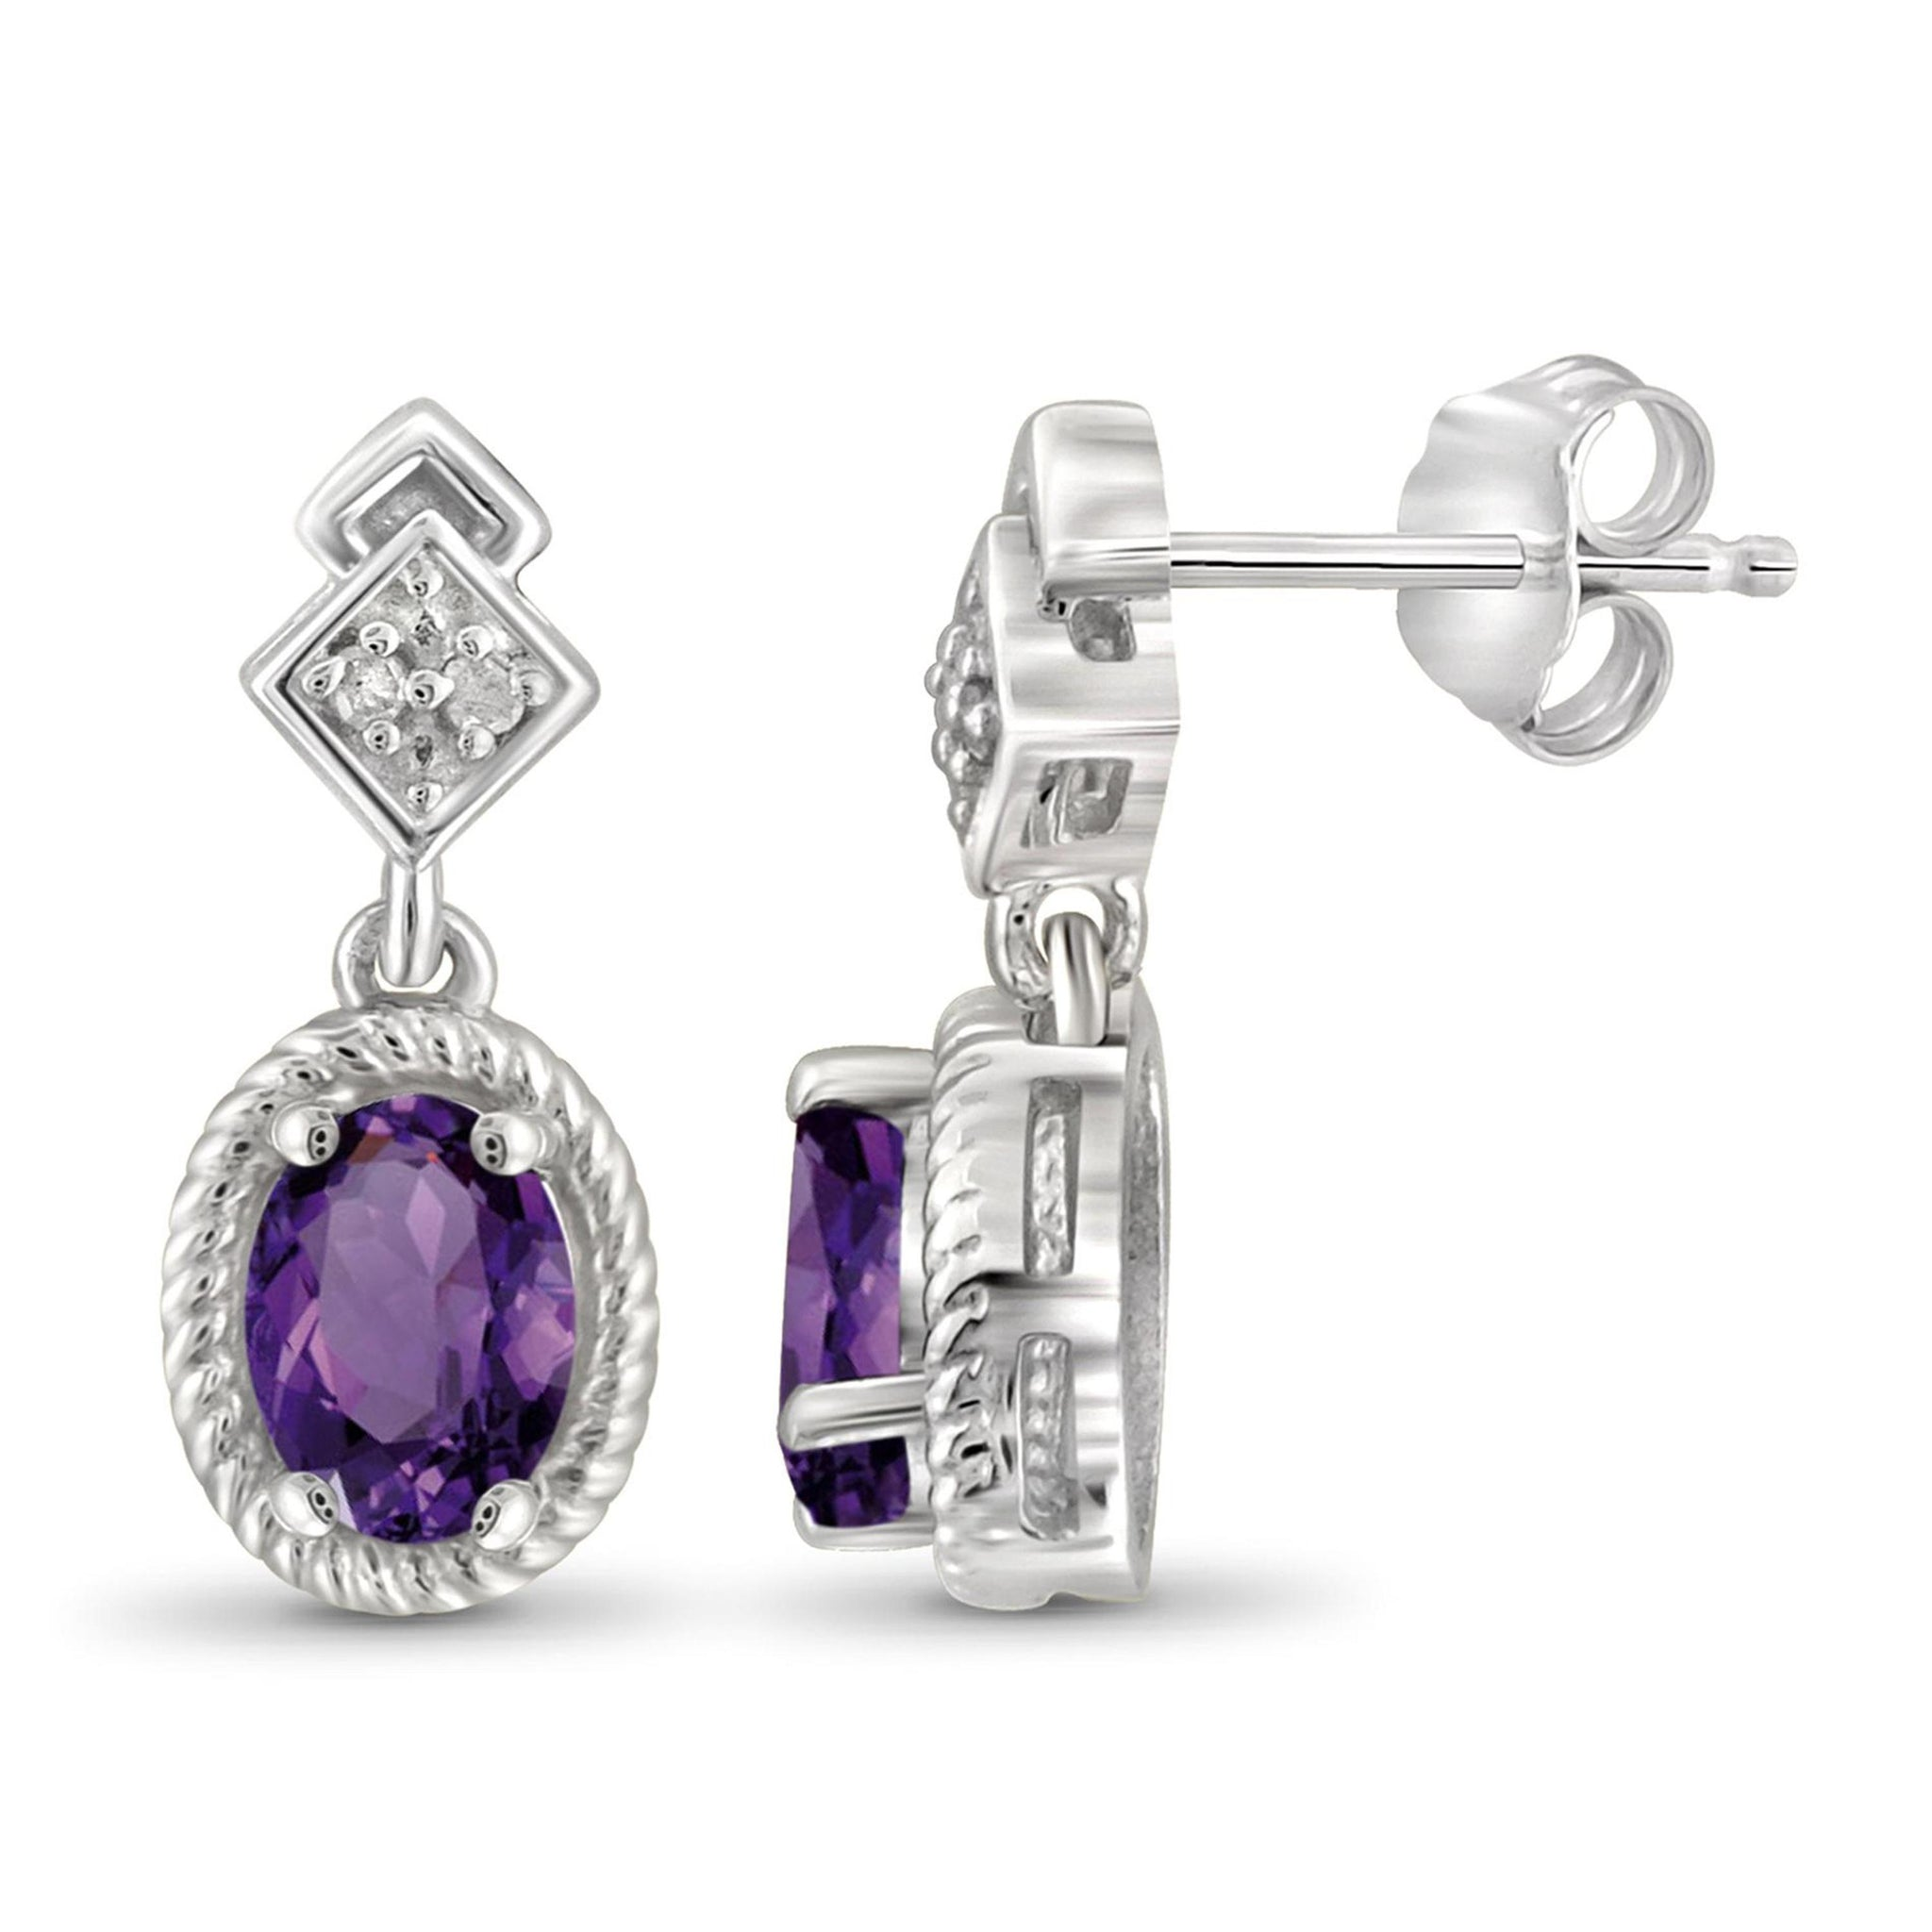 JewelonFire 3/4 Carat T.G.W. Amethyst and White Diamond Accent Sterling Silver Earrings - Assorted Colors